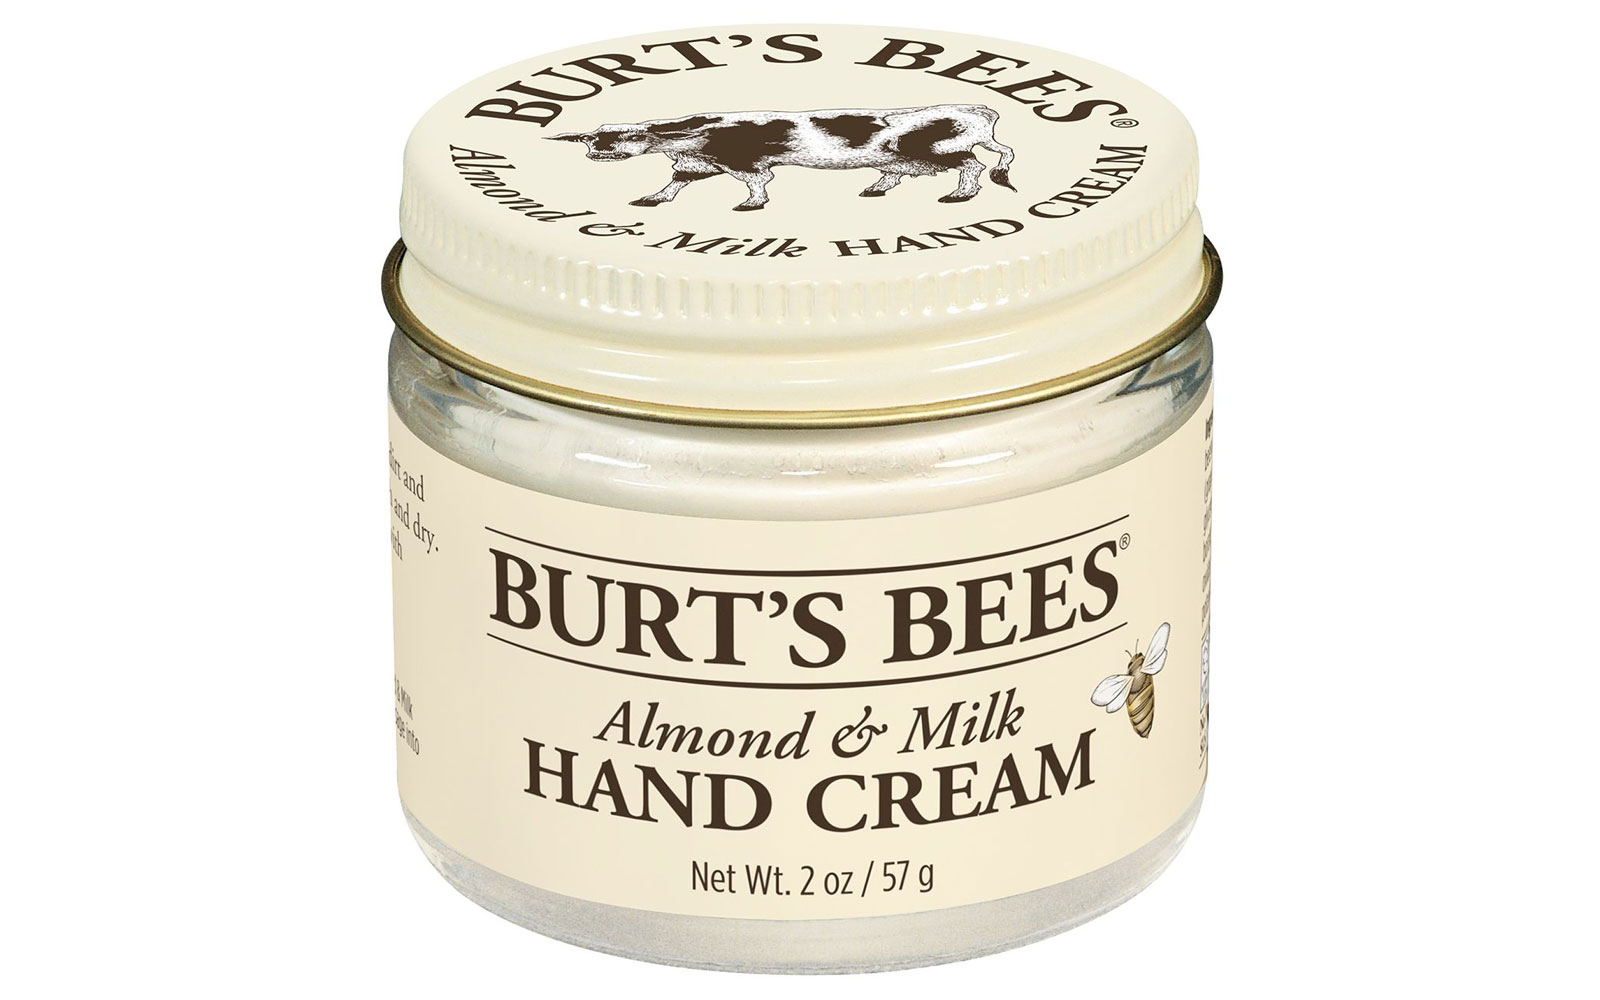 Jar of hand cream